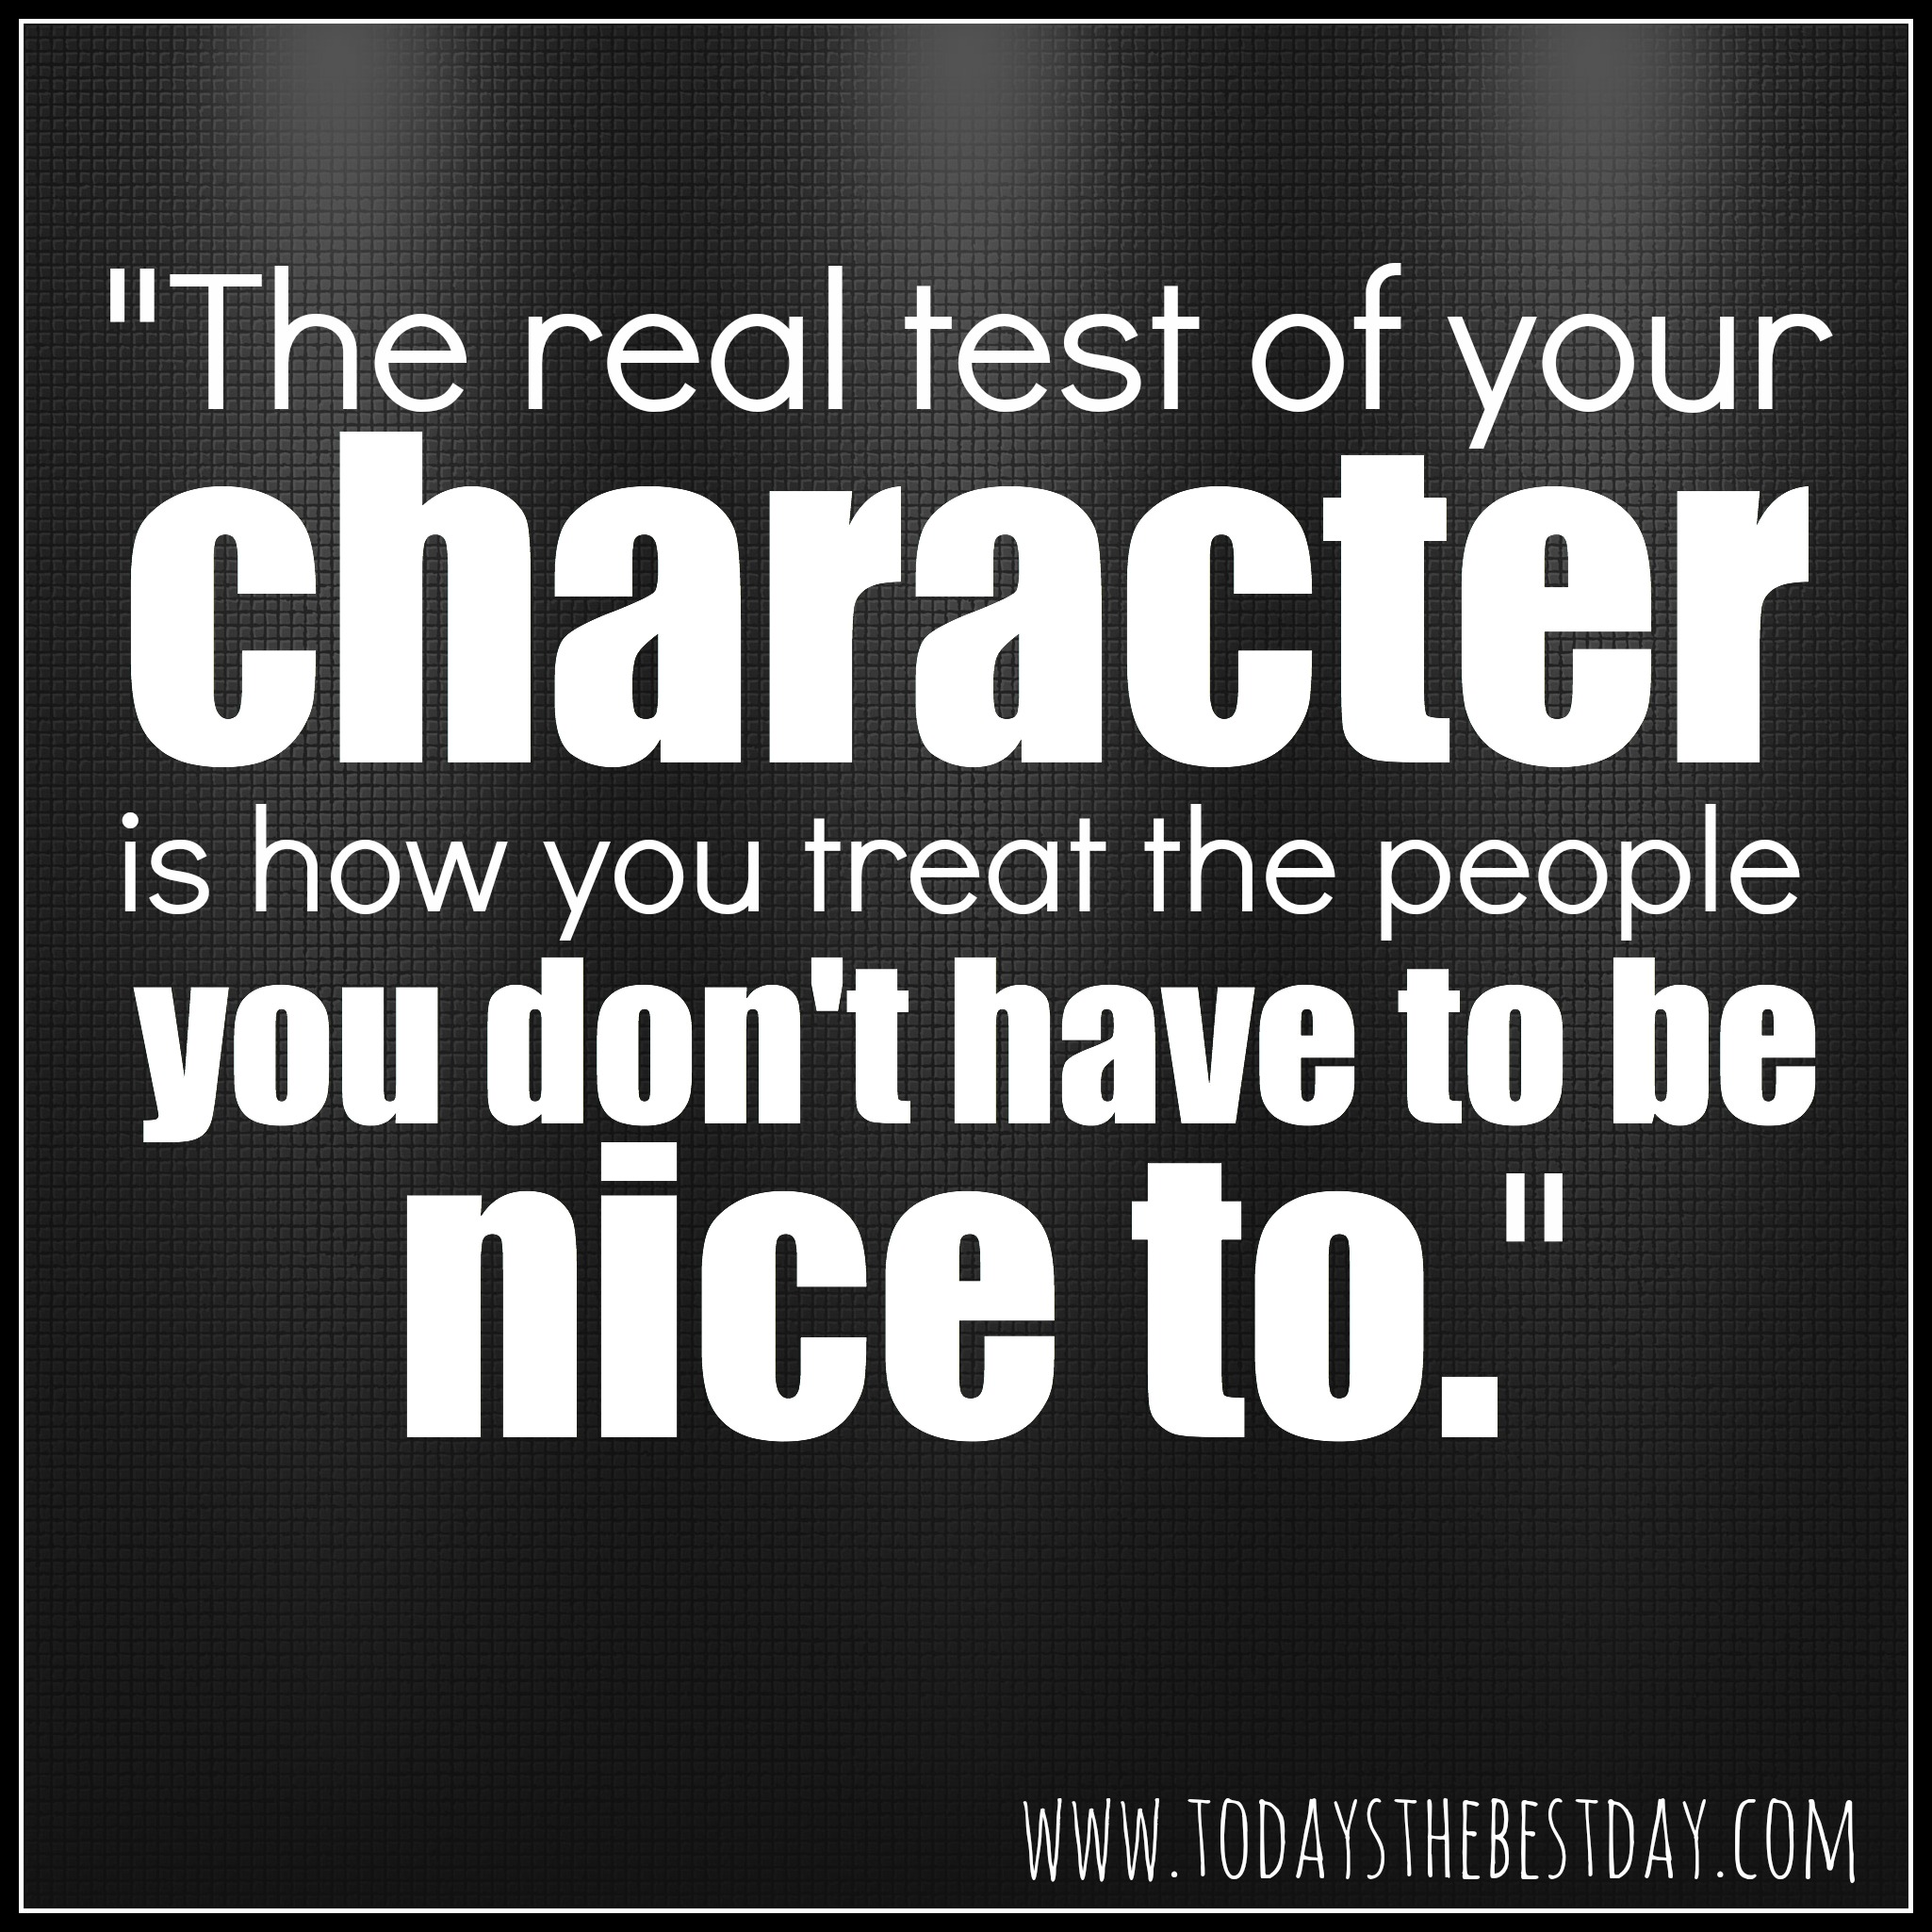 https://i0.wp.com/www.todaysthebestday.com/wp-content/uploads/2014/03/The-real-test-of-your-character-is-how-you-treat-the-people-you-dont-have-to-be-nice-to.jpg